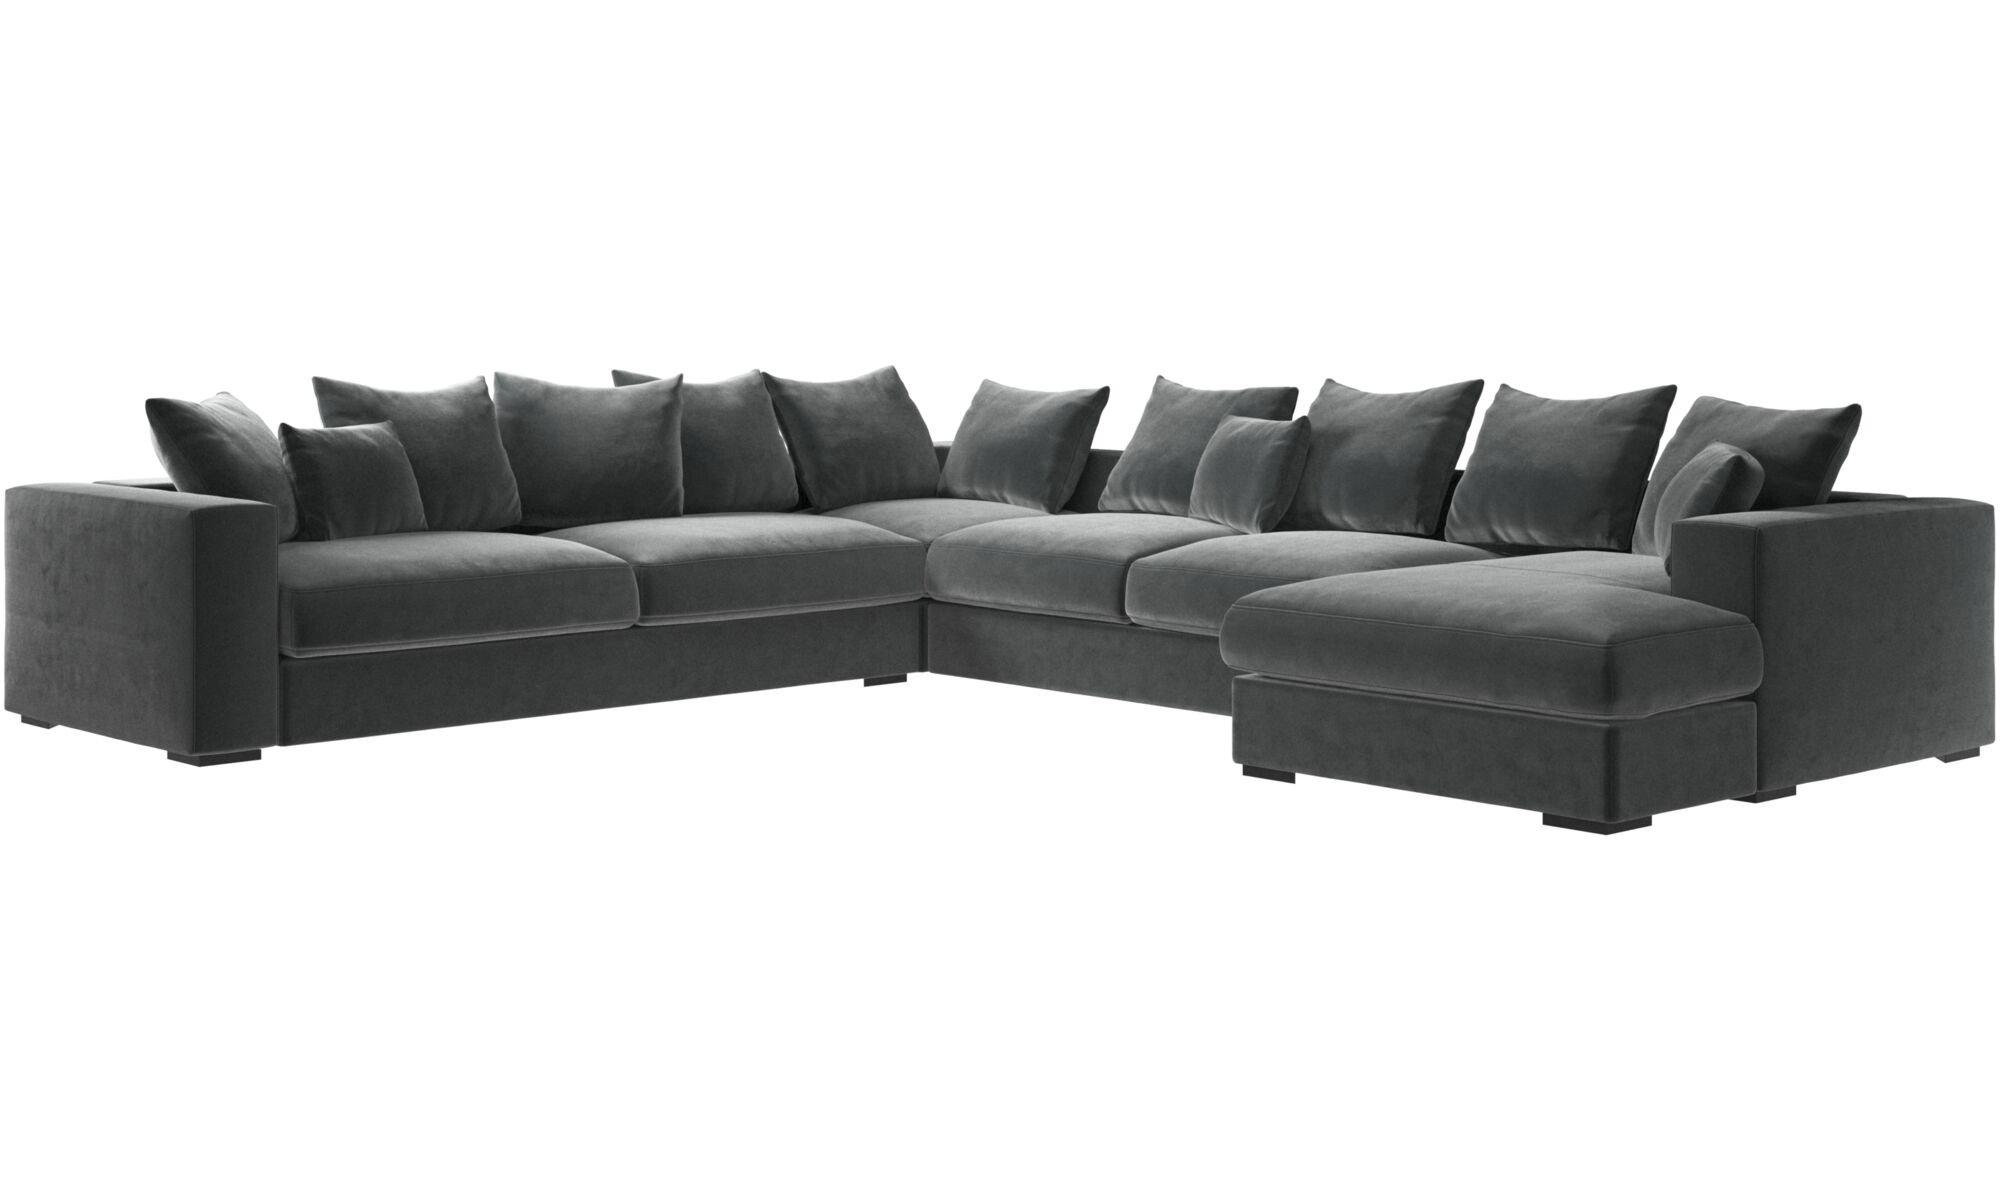 Fine Corner Sofas Cenova Corner Sofa With Resting Unit Boconcept Caraccident5 Cool Chair Designs And Ideas Caraccident5Info